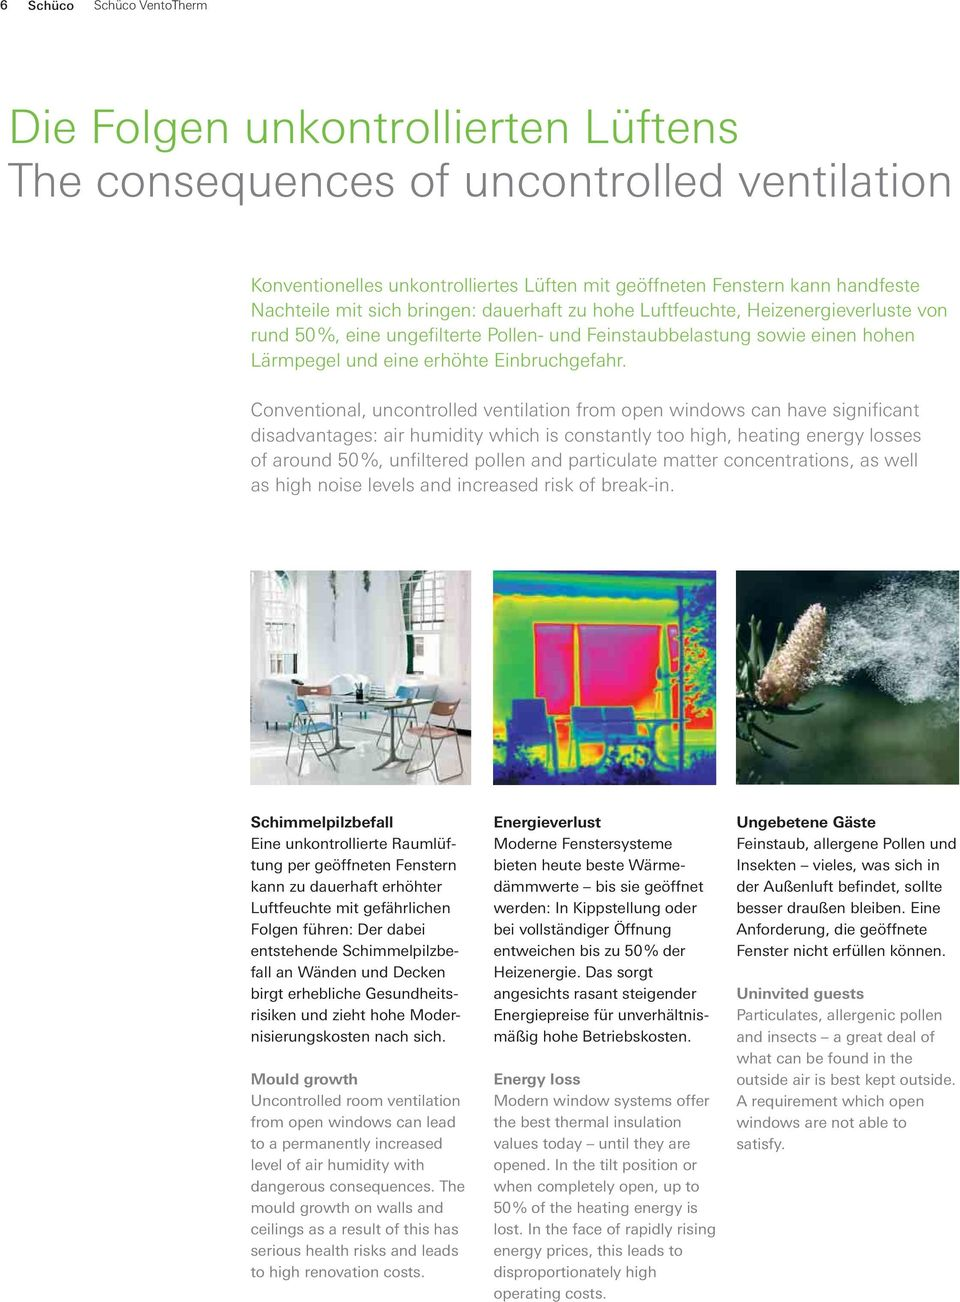 Conventional, uncontrolled ventilation from open windows can have significant disadvantages: air humidity which is constantly too high, heating energy losses of around 50 %, unfiltered pollen and